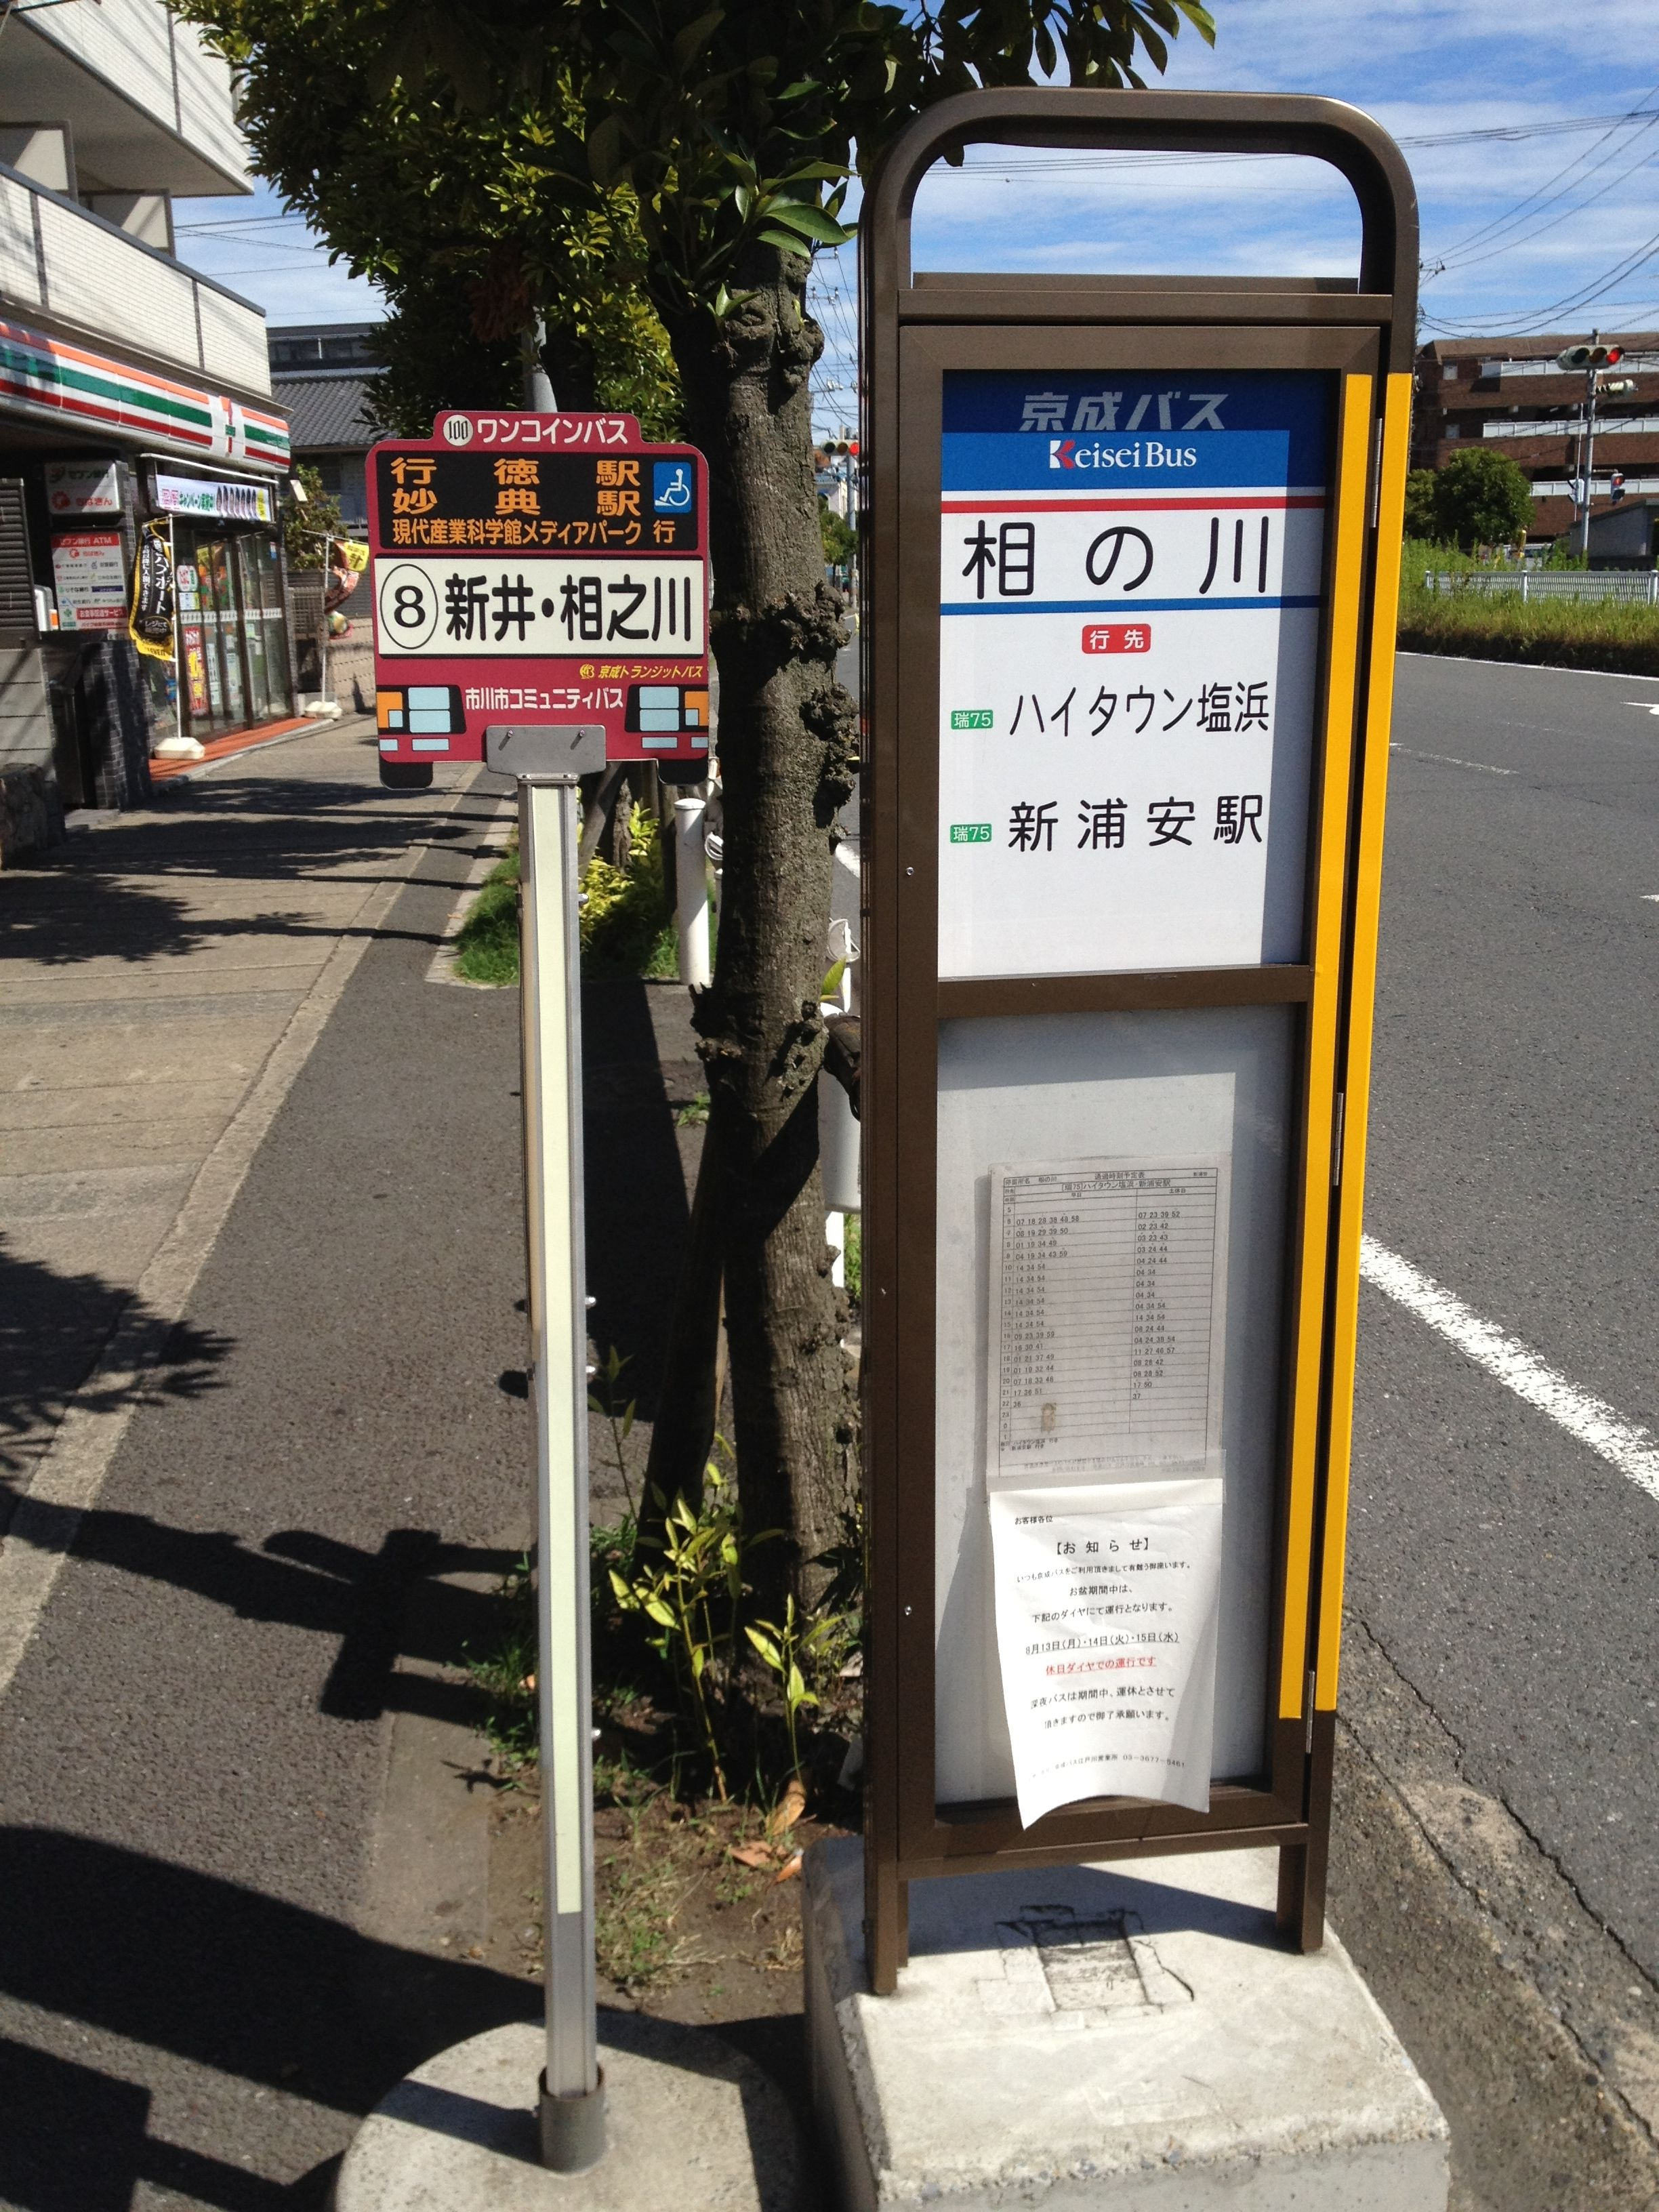 Japanese Bus Stop With Images Bus Stop Design Bus Stop Sign